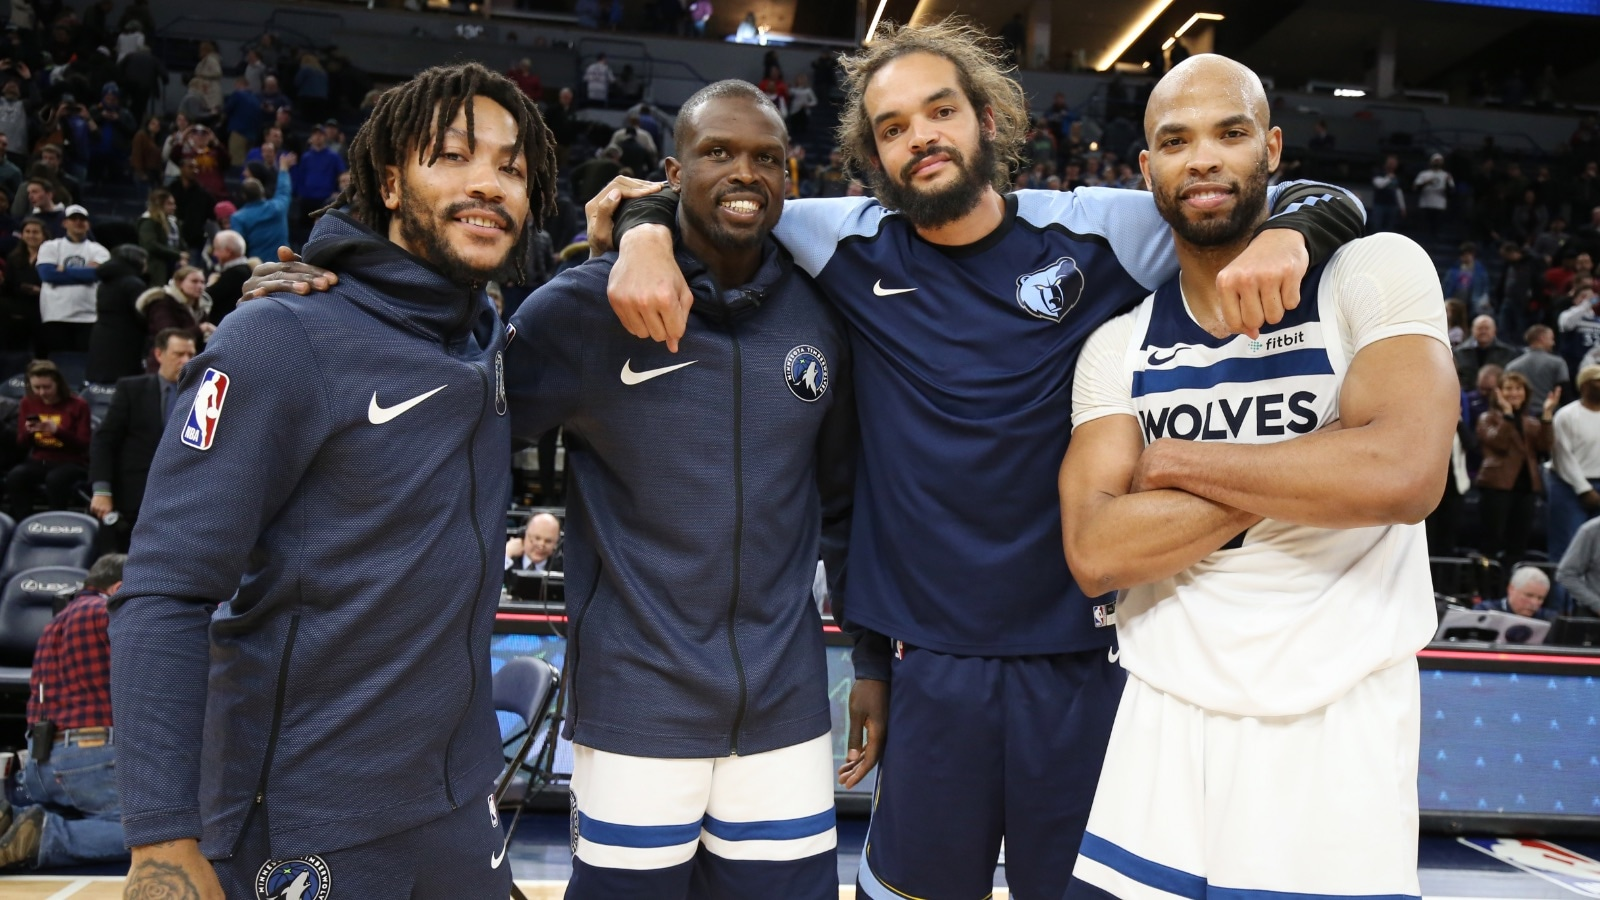 Derrick Rose #25 of the Minnesota Timberwolves, Luol Deng #9 of the Minnesota Timberwolves, Joakim Noah #55 of the Memphis Grizzlies, and Taj Gibson #67 of the Minnesota Timberwolves pose for a photo following the game on January 30, 2019 at Target Center in Minneapolis, Minnesota.